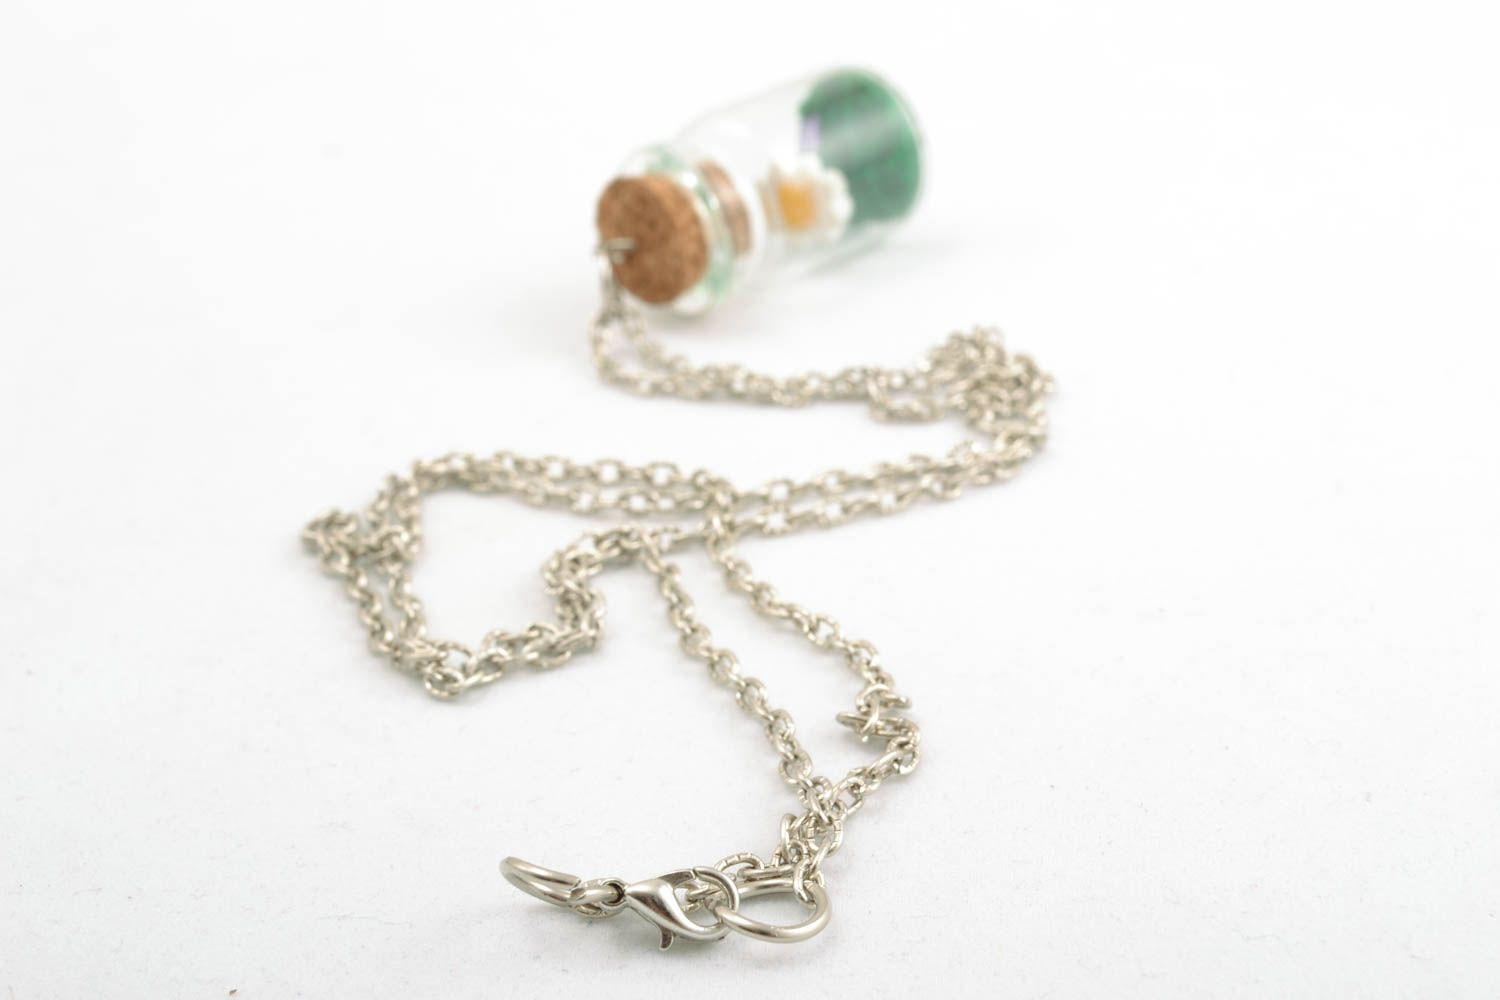 Pendant with a long chain photo 4